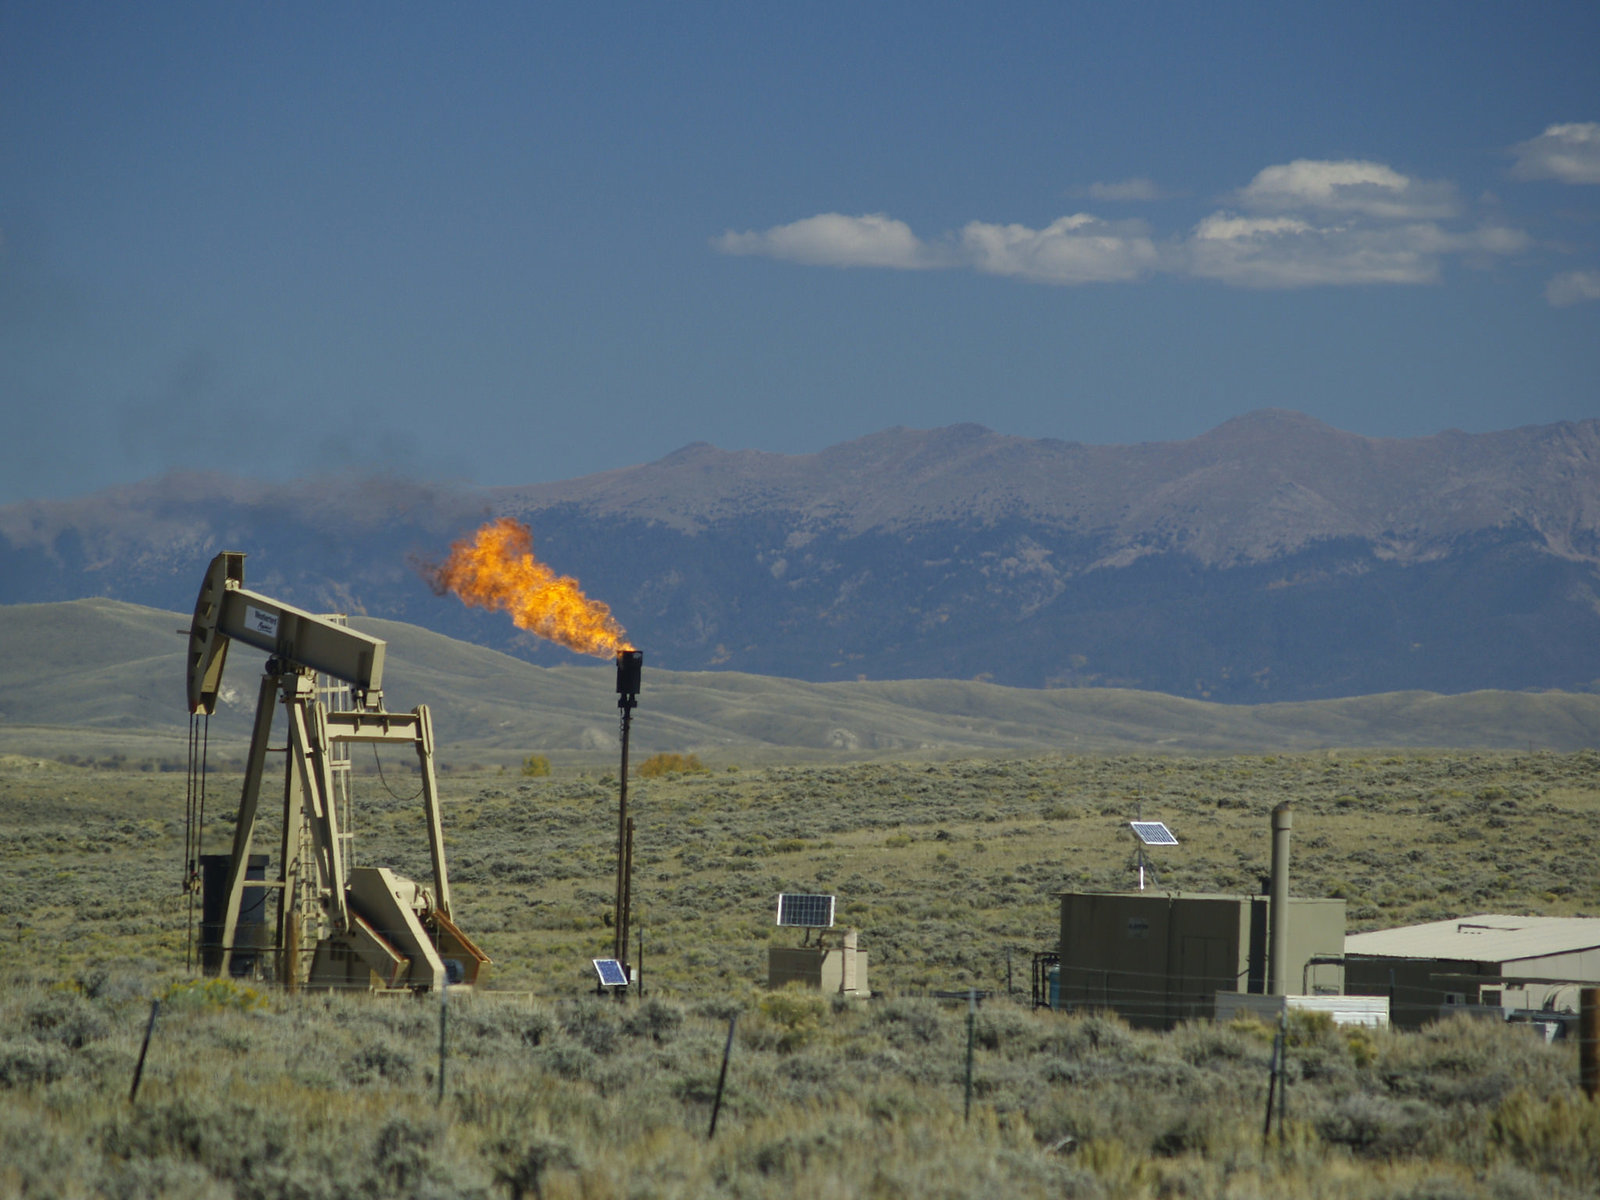 Faulty fracking wells in Colorado was found to be contaminating drinking water